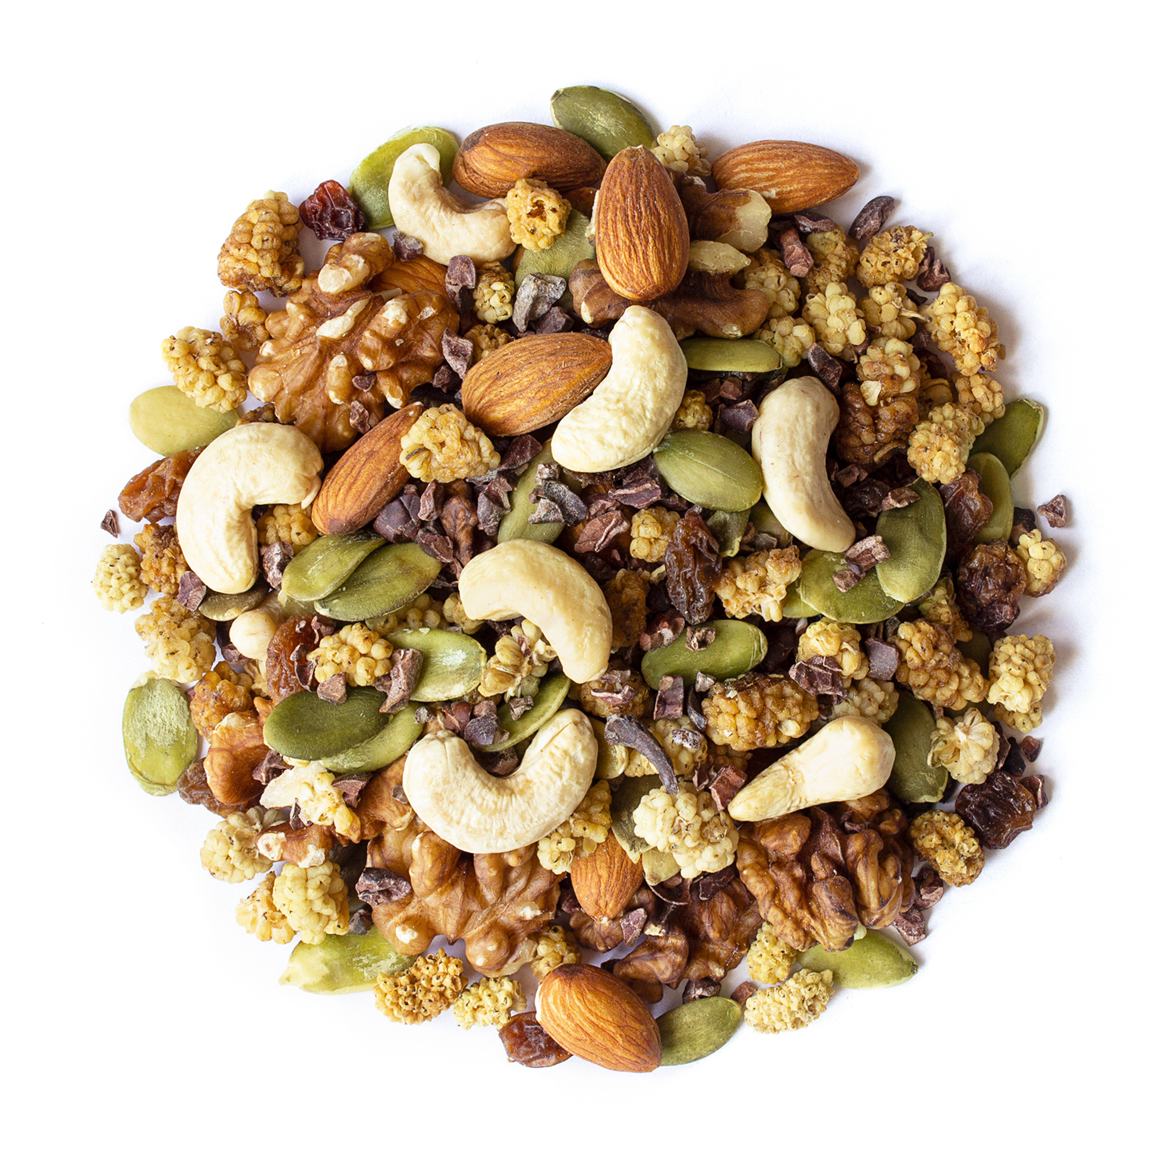 organic snack wise trail mix main